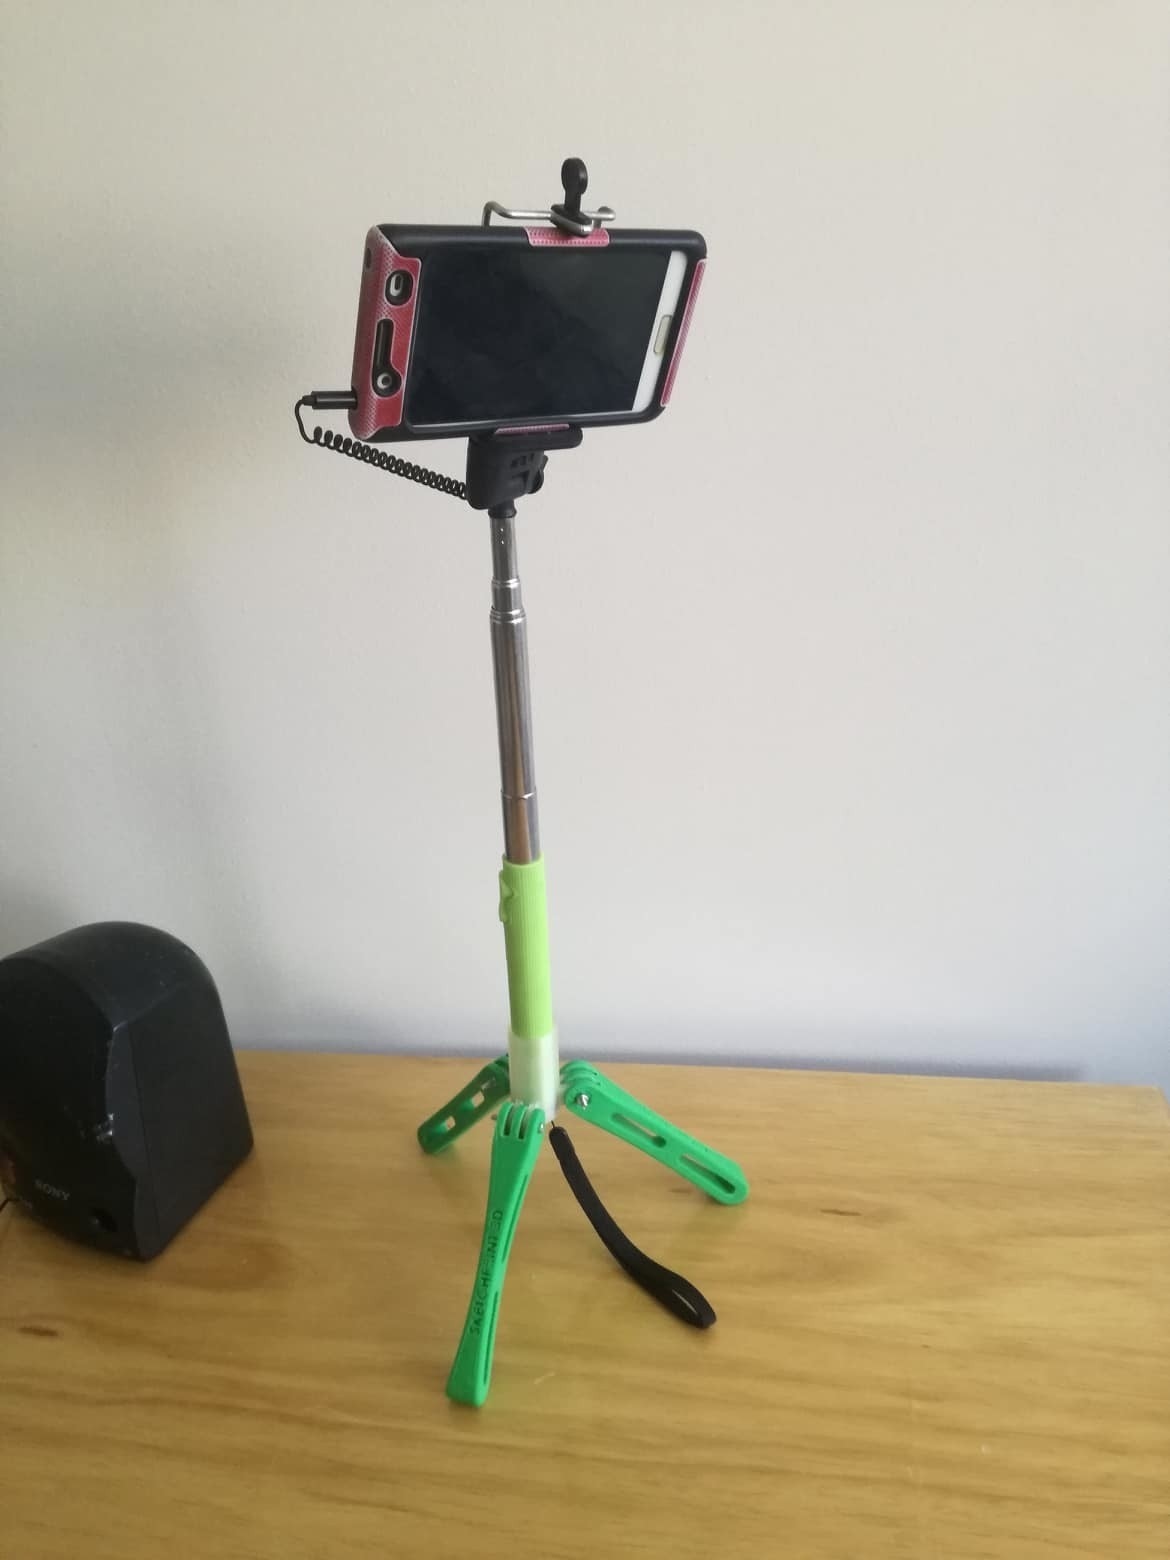 38751348_244986662822449_4939965469965680640_n.jpg Download free STL file Tripod - selfie stick • 3D printer model, sketchprint3d